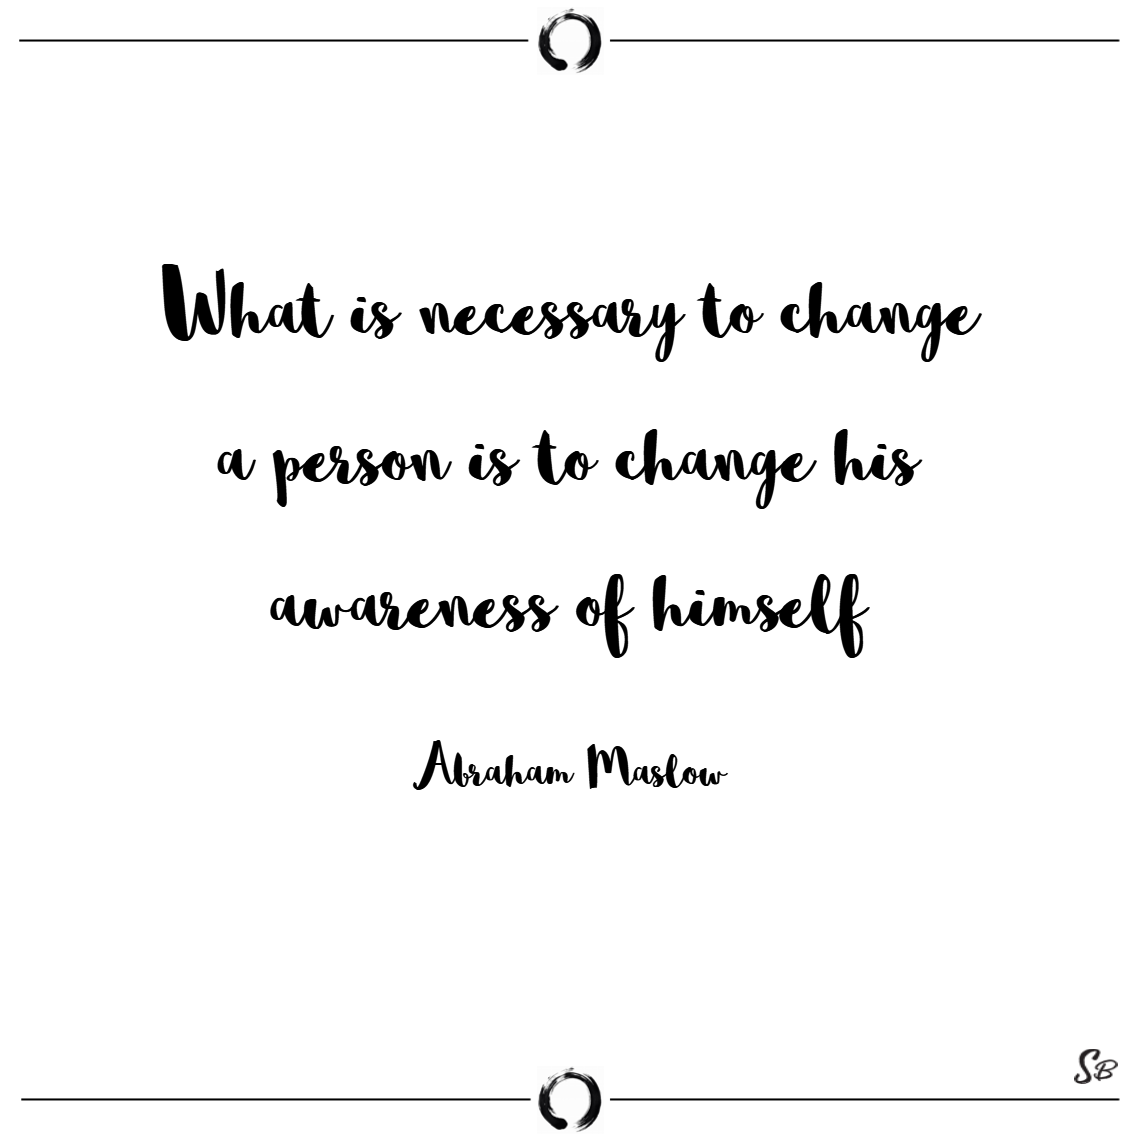 What is necessary to change a person is to change his awareness of himself. – abraham maslow